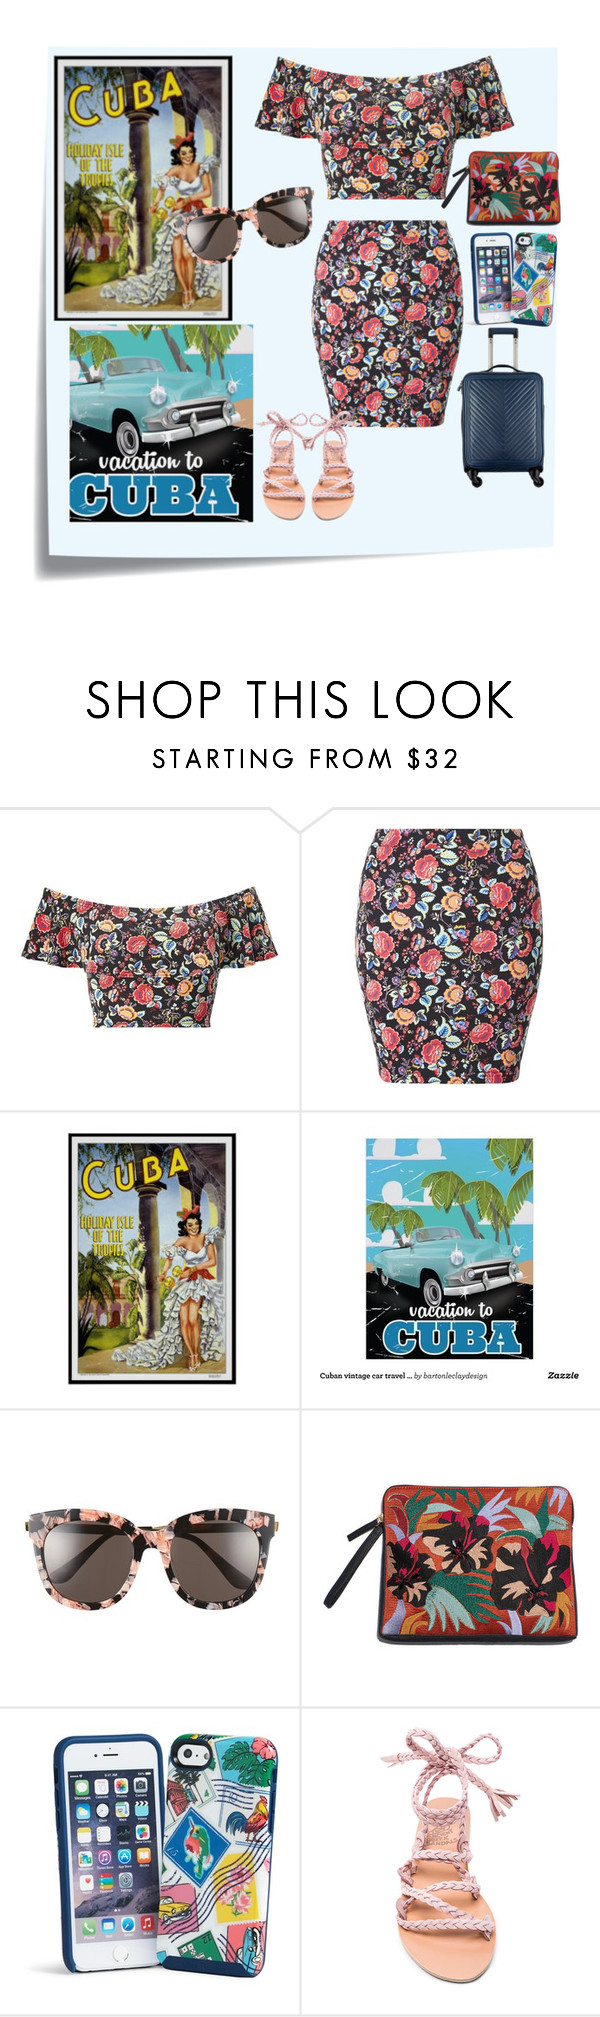 """pack and go : Cuba"" by nendeayesika ❤ liked on Polyvore featuring Post-It, Miss Selfridge, Gentle Monster, Vera Bradley and Ancient Greek Sandals"